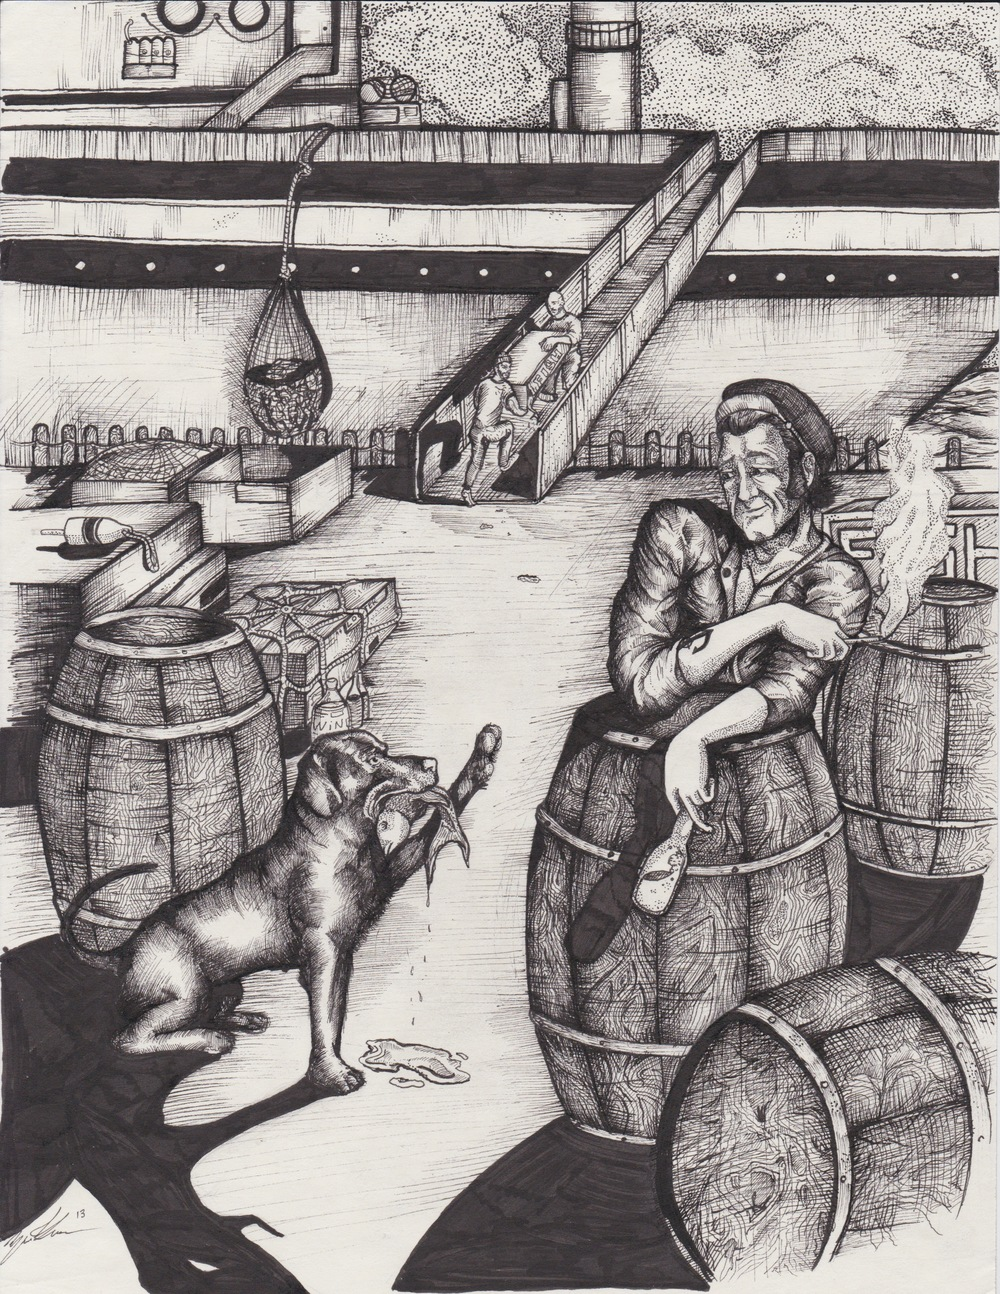 Sailor and Dog - Pen and Ink